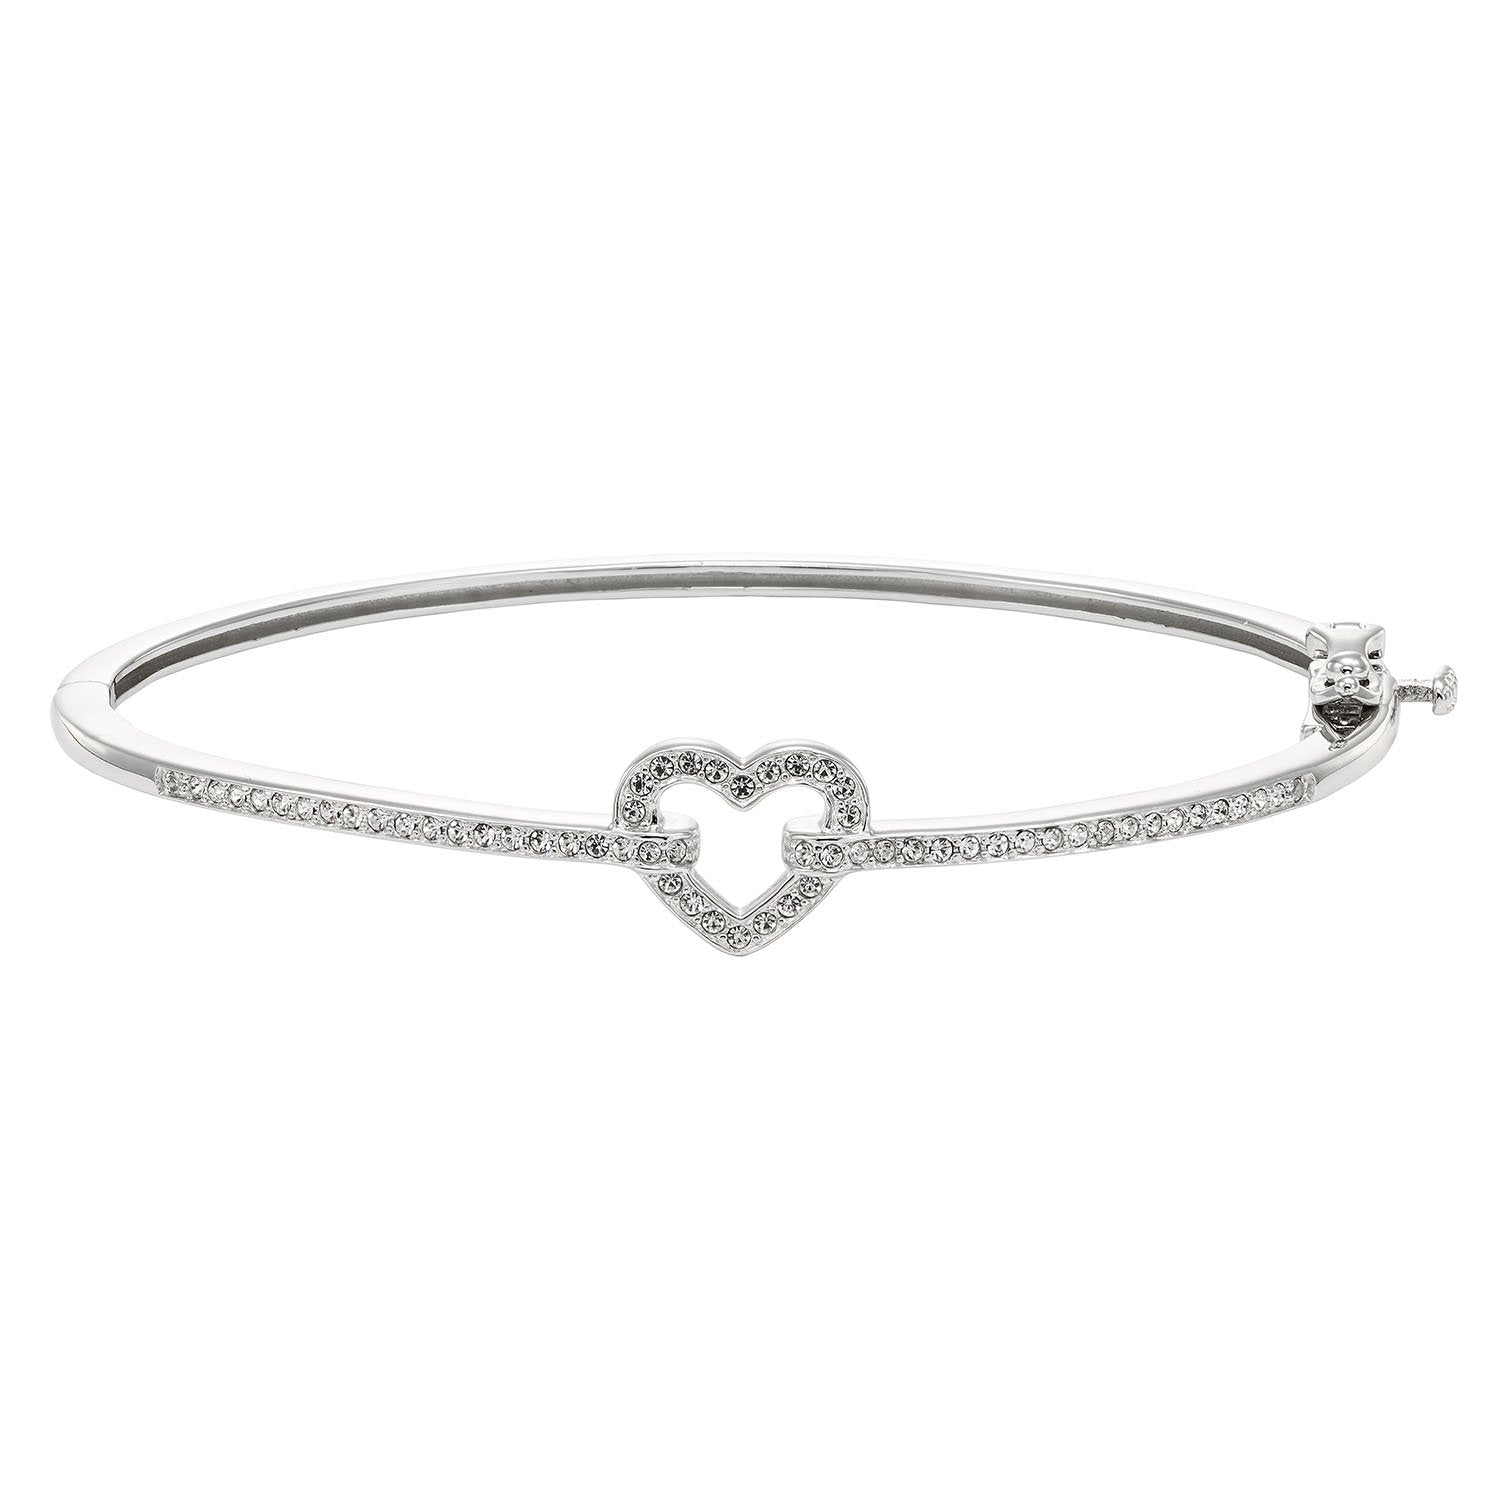 Diamond Accent & Crystal Fashion Bangle in Sterling Silver - 7.25""